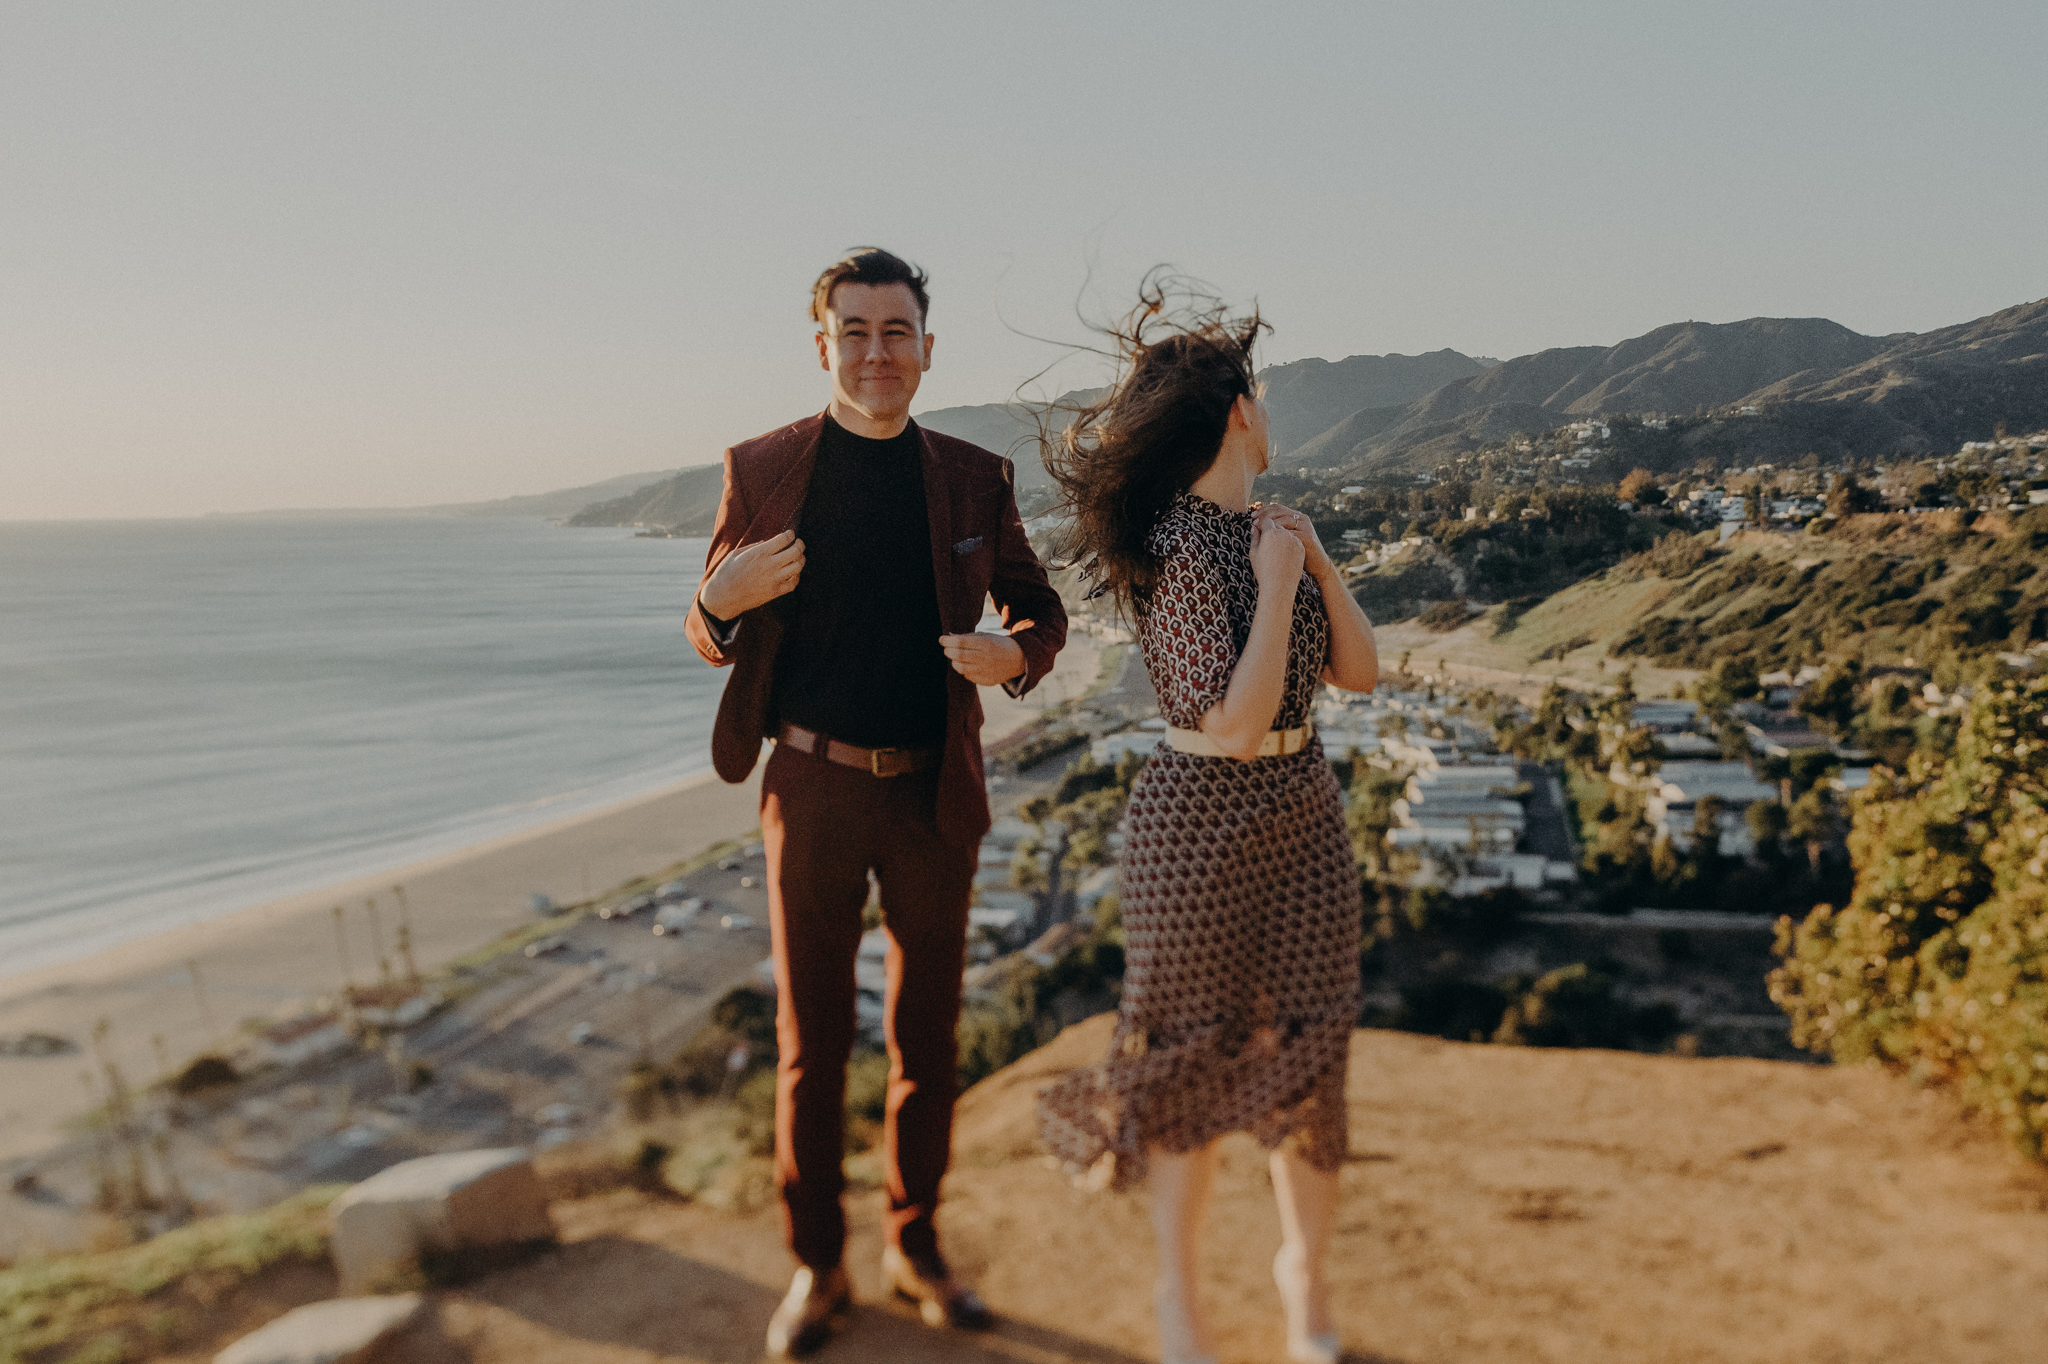 Santa Monica Engagement Photos - Wedding Photographer in Los Angeles - IsaiahAndTaylor.com -032.jpg